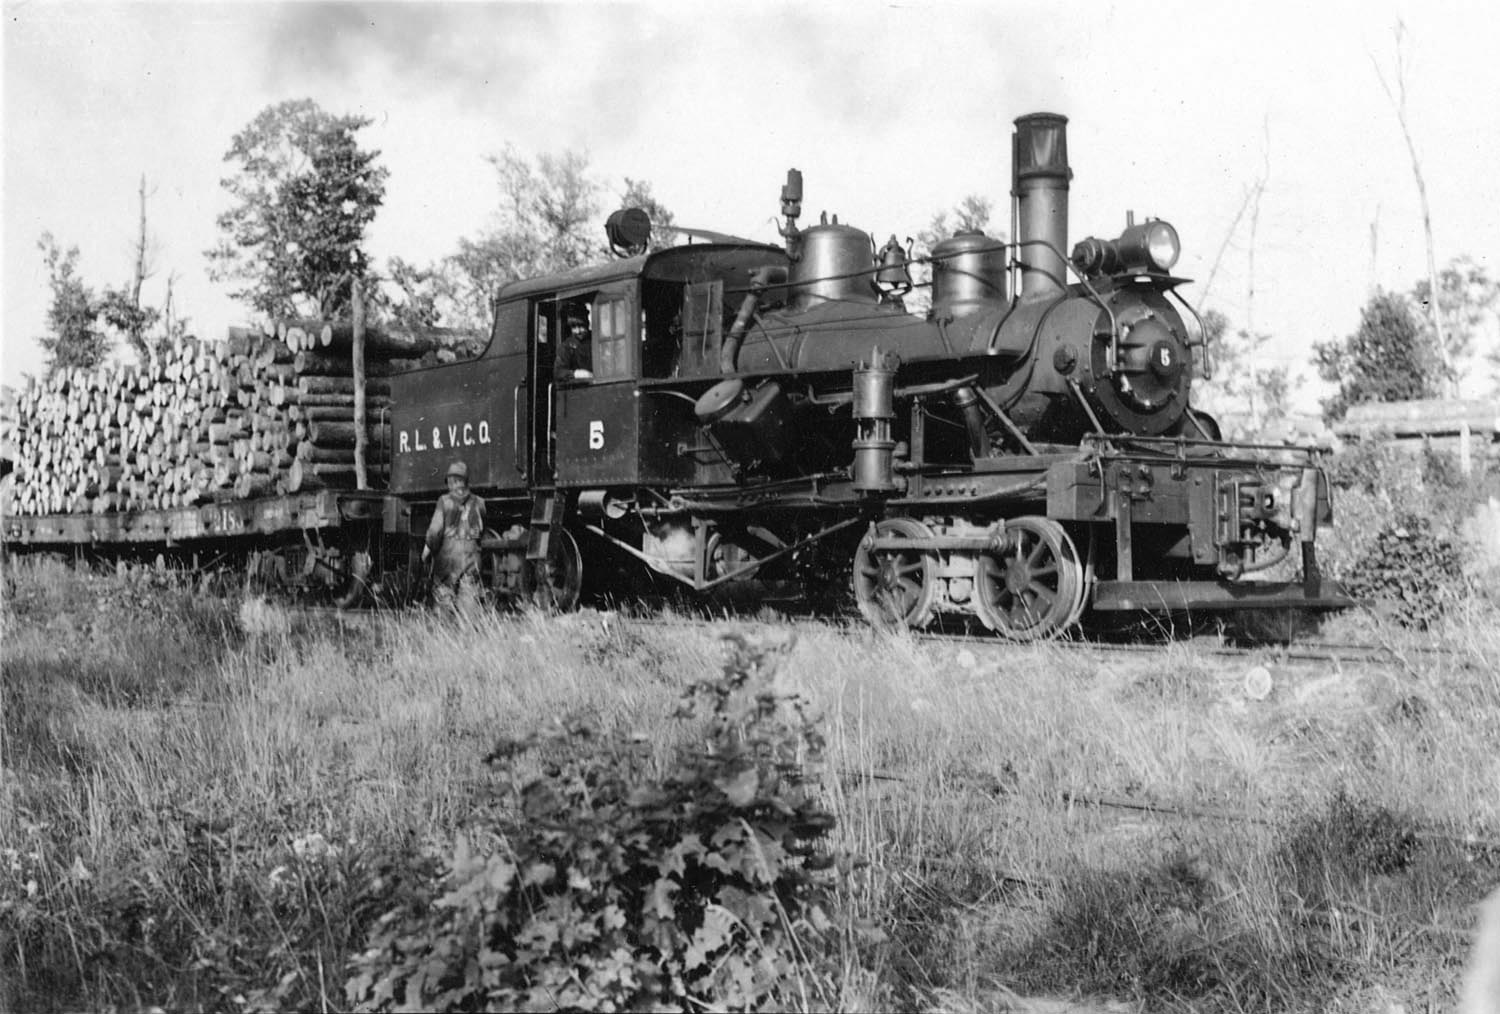 Logging train hauling lumber. Taken in 1937 in Mercer, Iron County. Wisconsin Department of Natural Resources photo